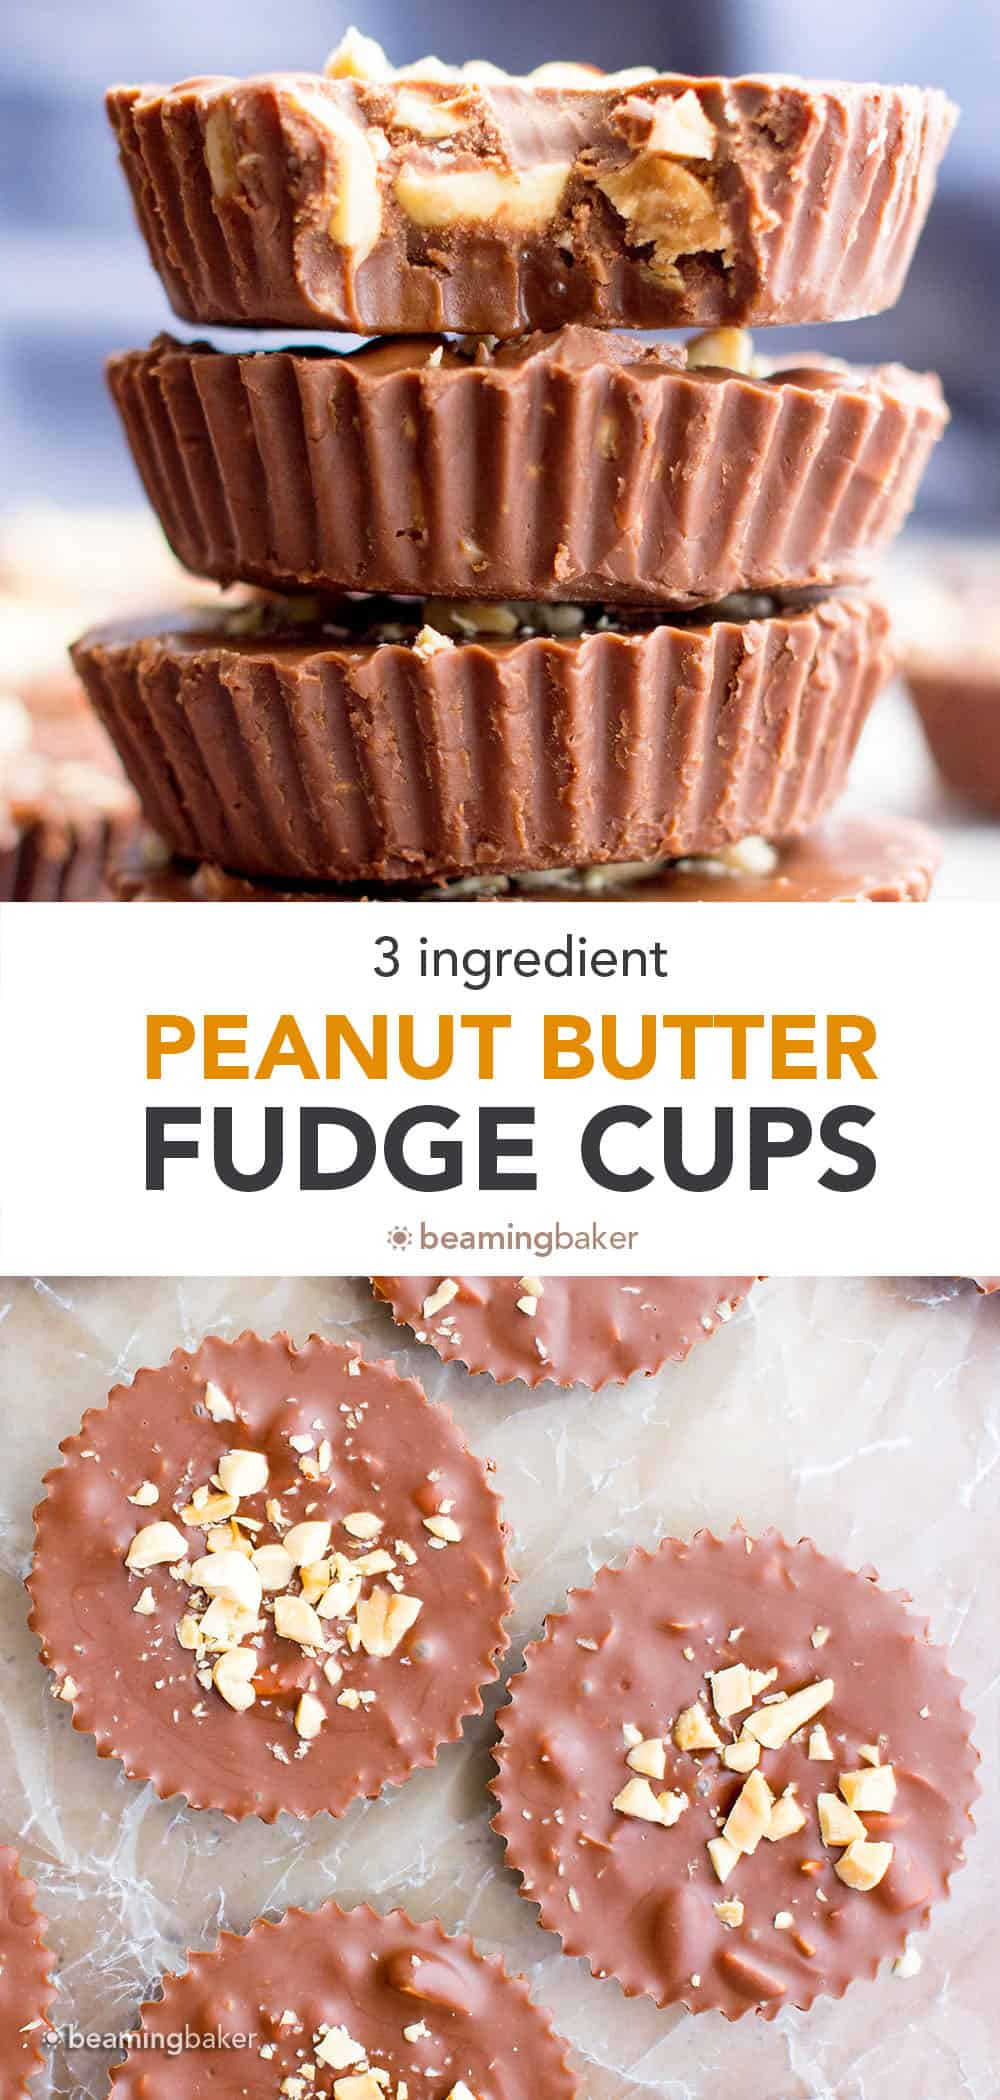 Chocolate Peanut Butter Fudge Cups: only 3 ingredients for super easy chocolate peanut butter fudge cups that are decadent, creamy and delicious! #Chocolate #PeanutButter #Fudge | Recipe at BeamingBaker.com